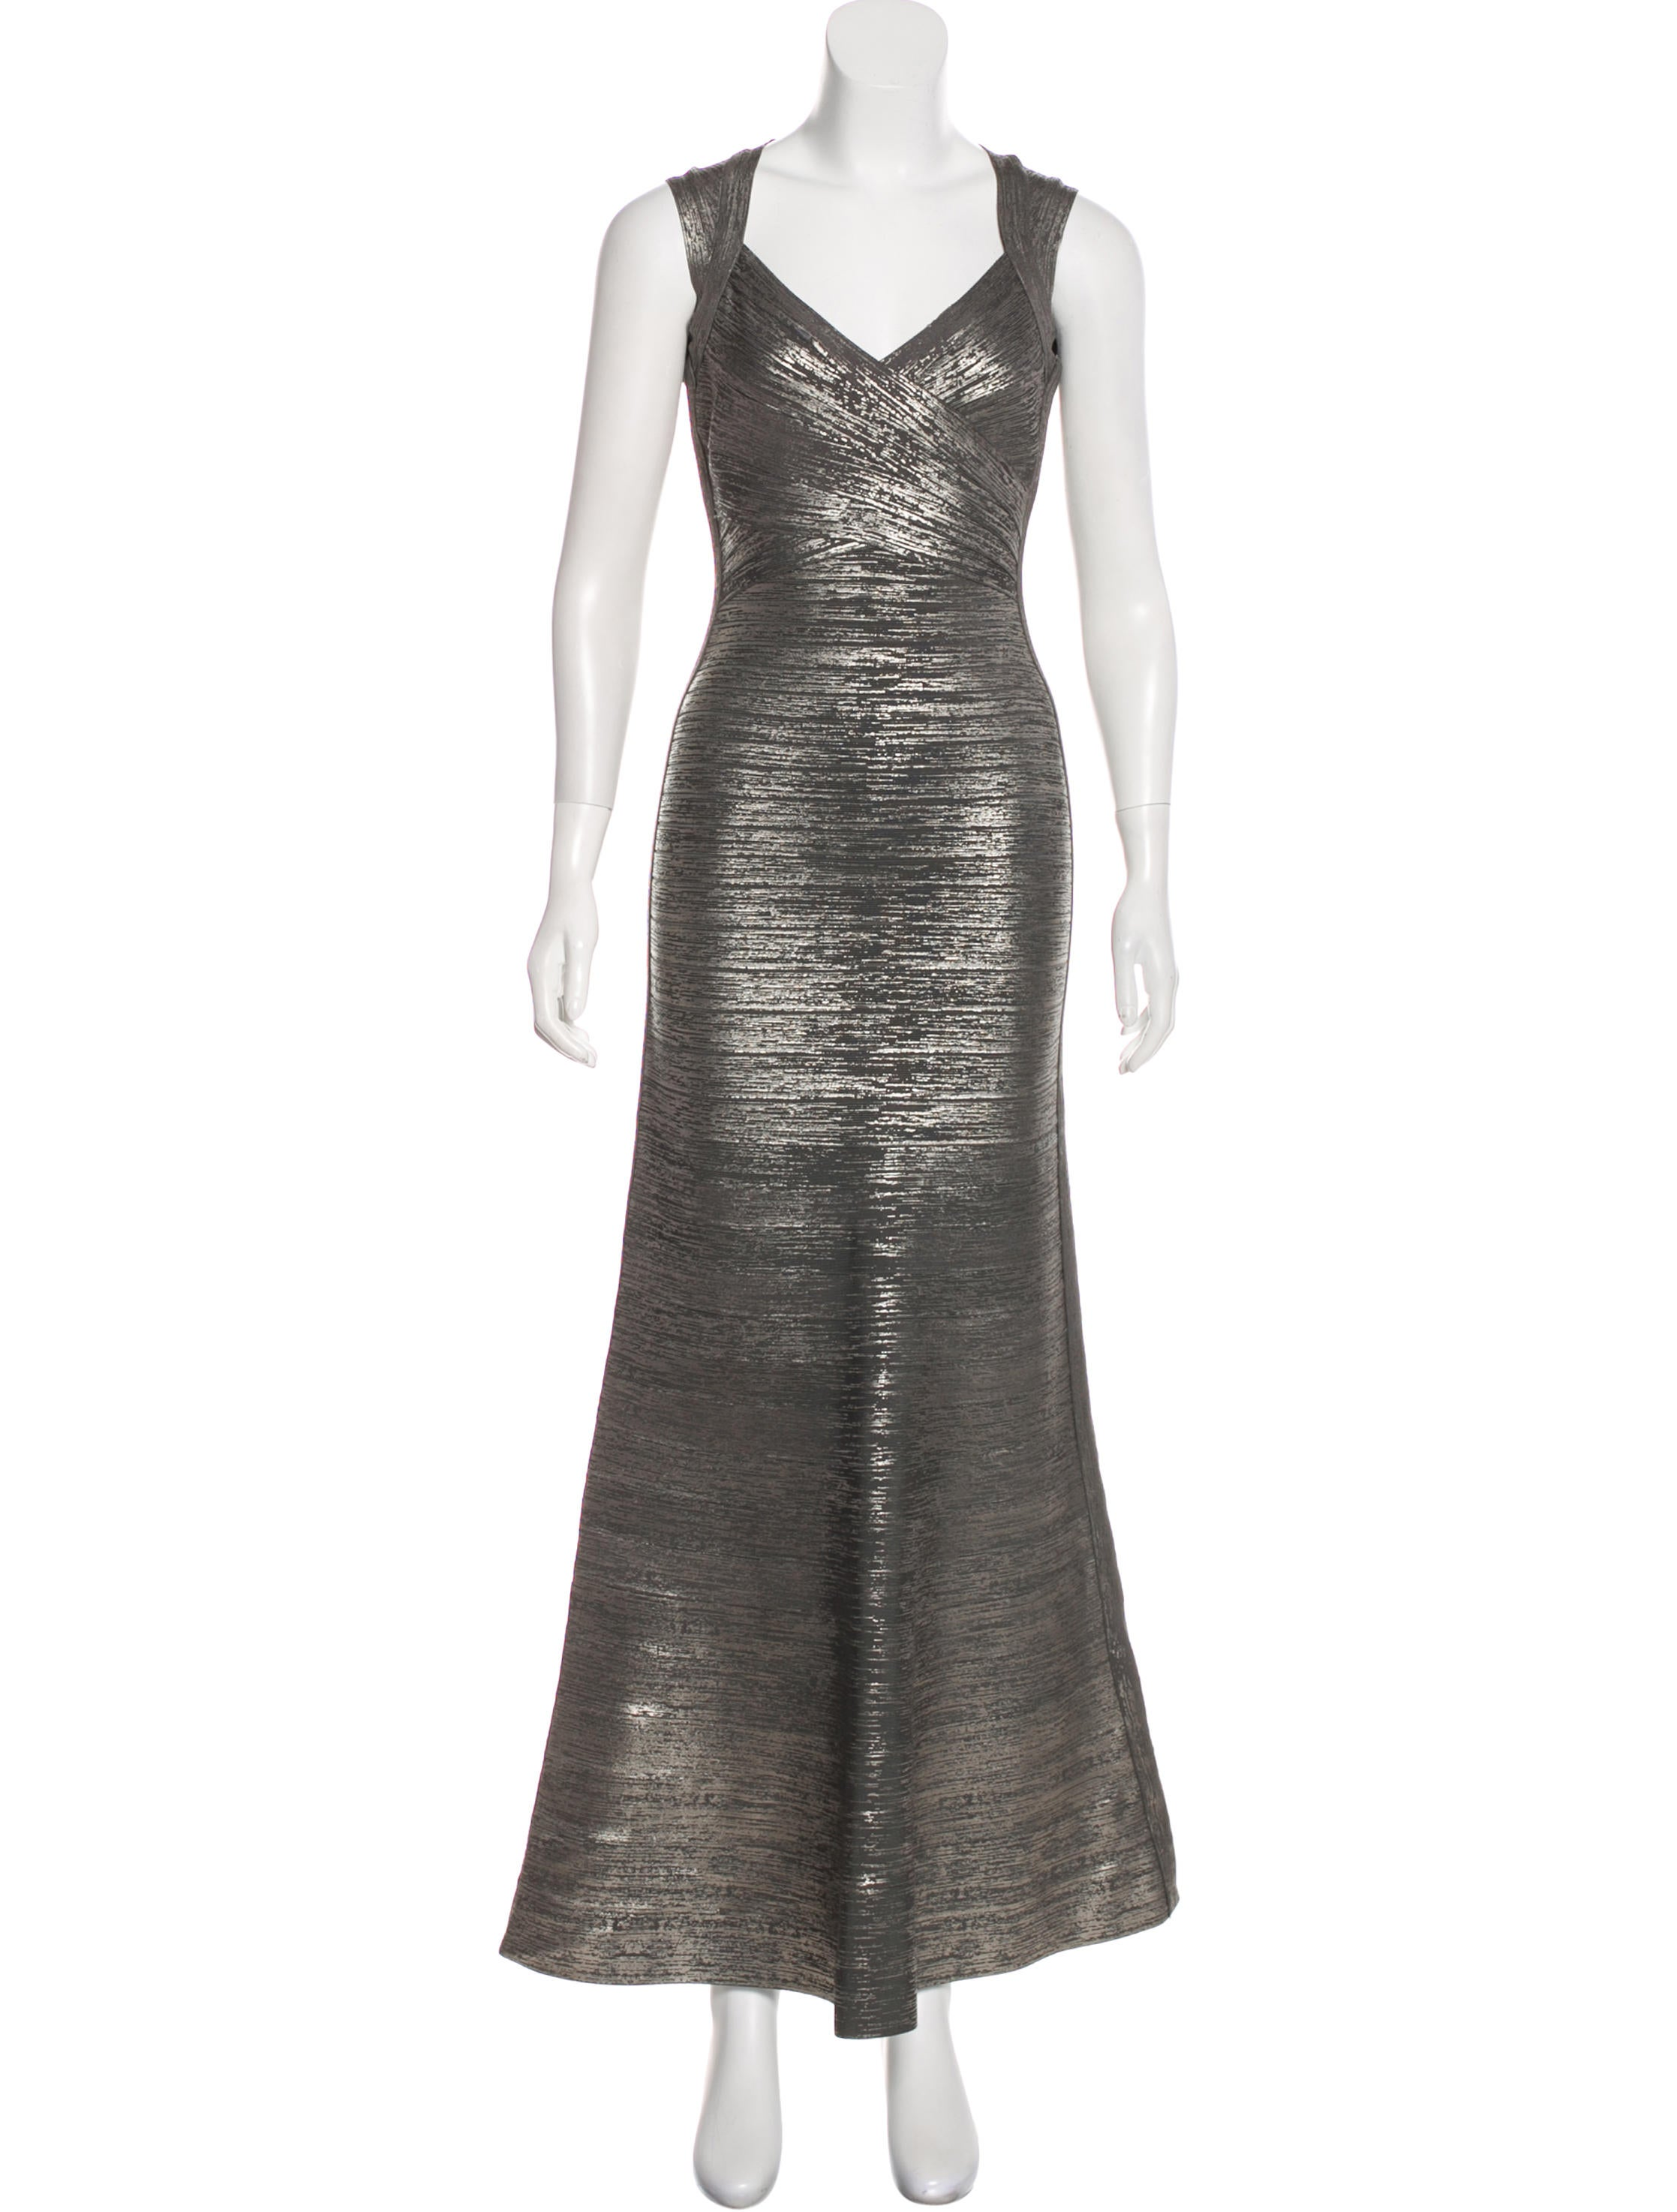 Herve Leger Camilla Bandage Gown - Clothing - HEV35608 | The RealReal